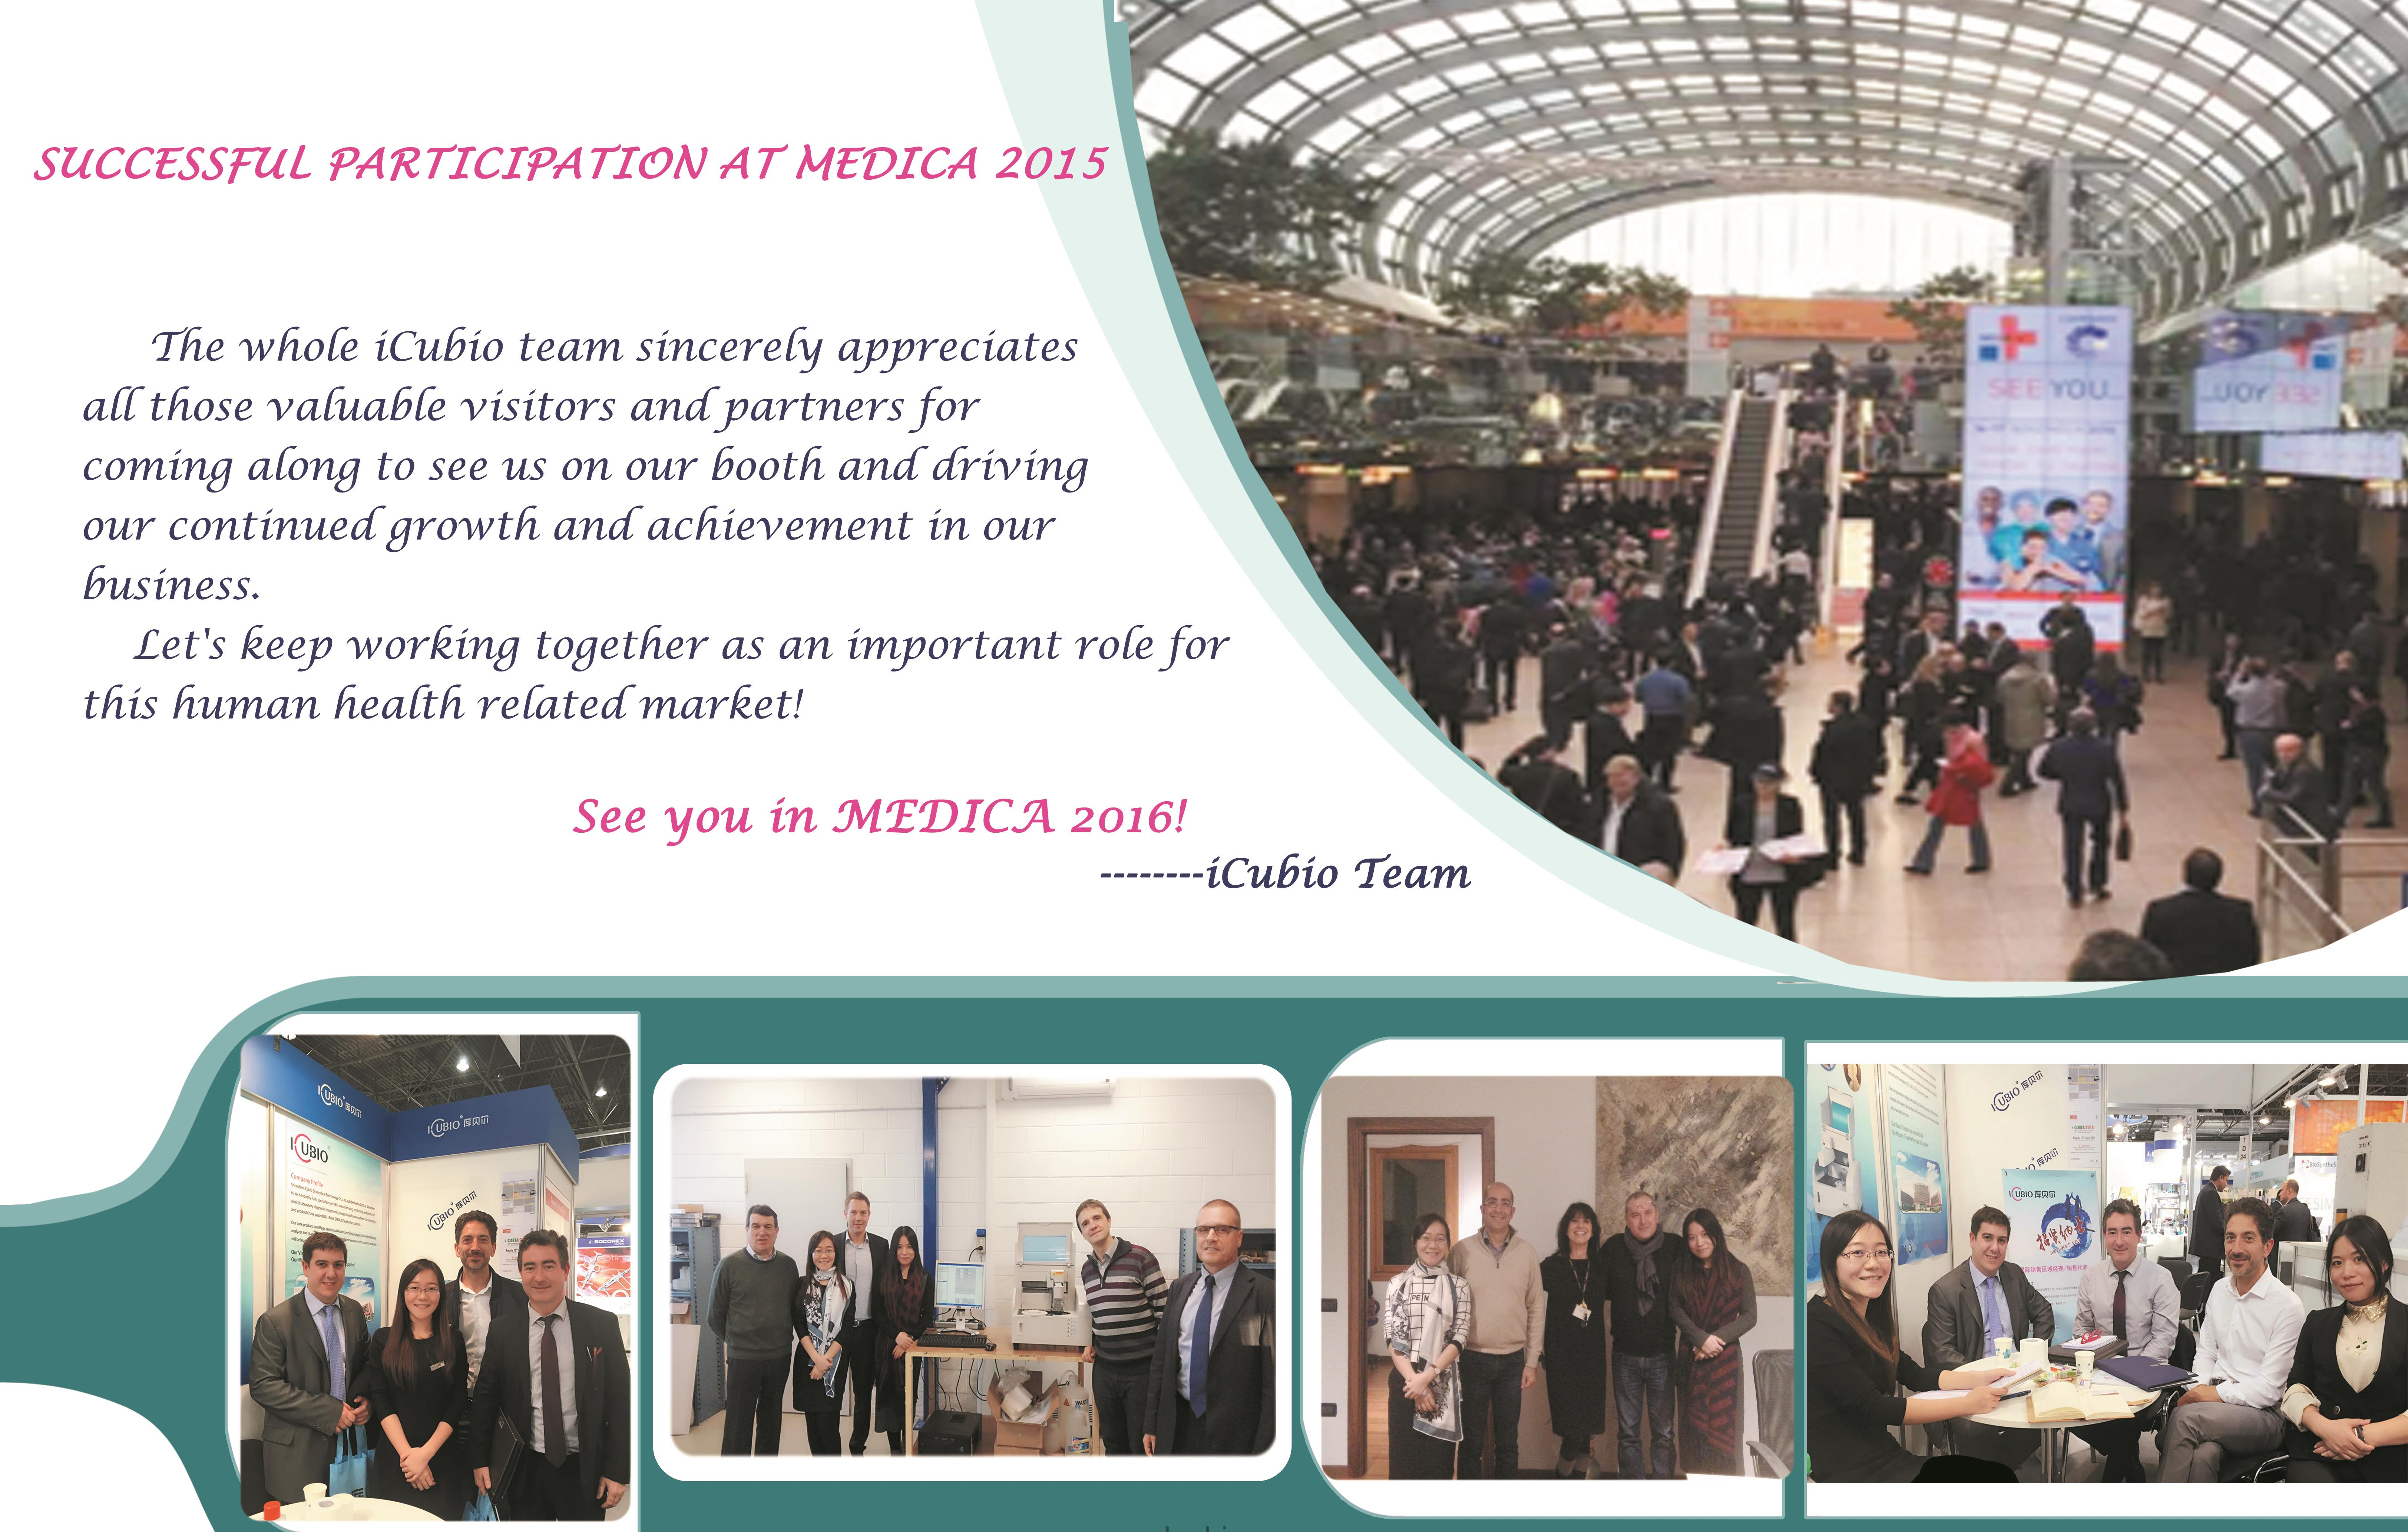 SUCCESSFUL PARTICIPATION AT MEDICA 2015